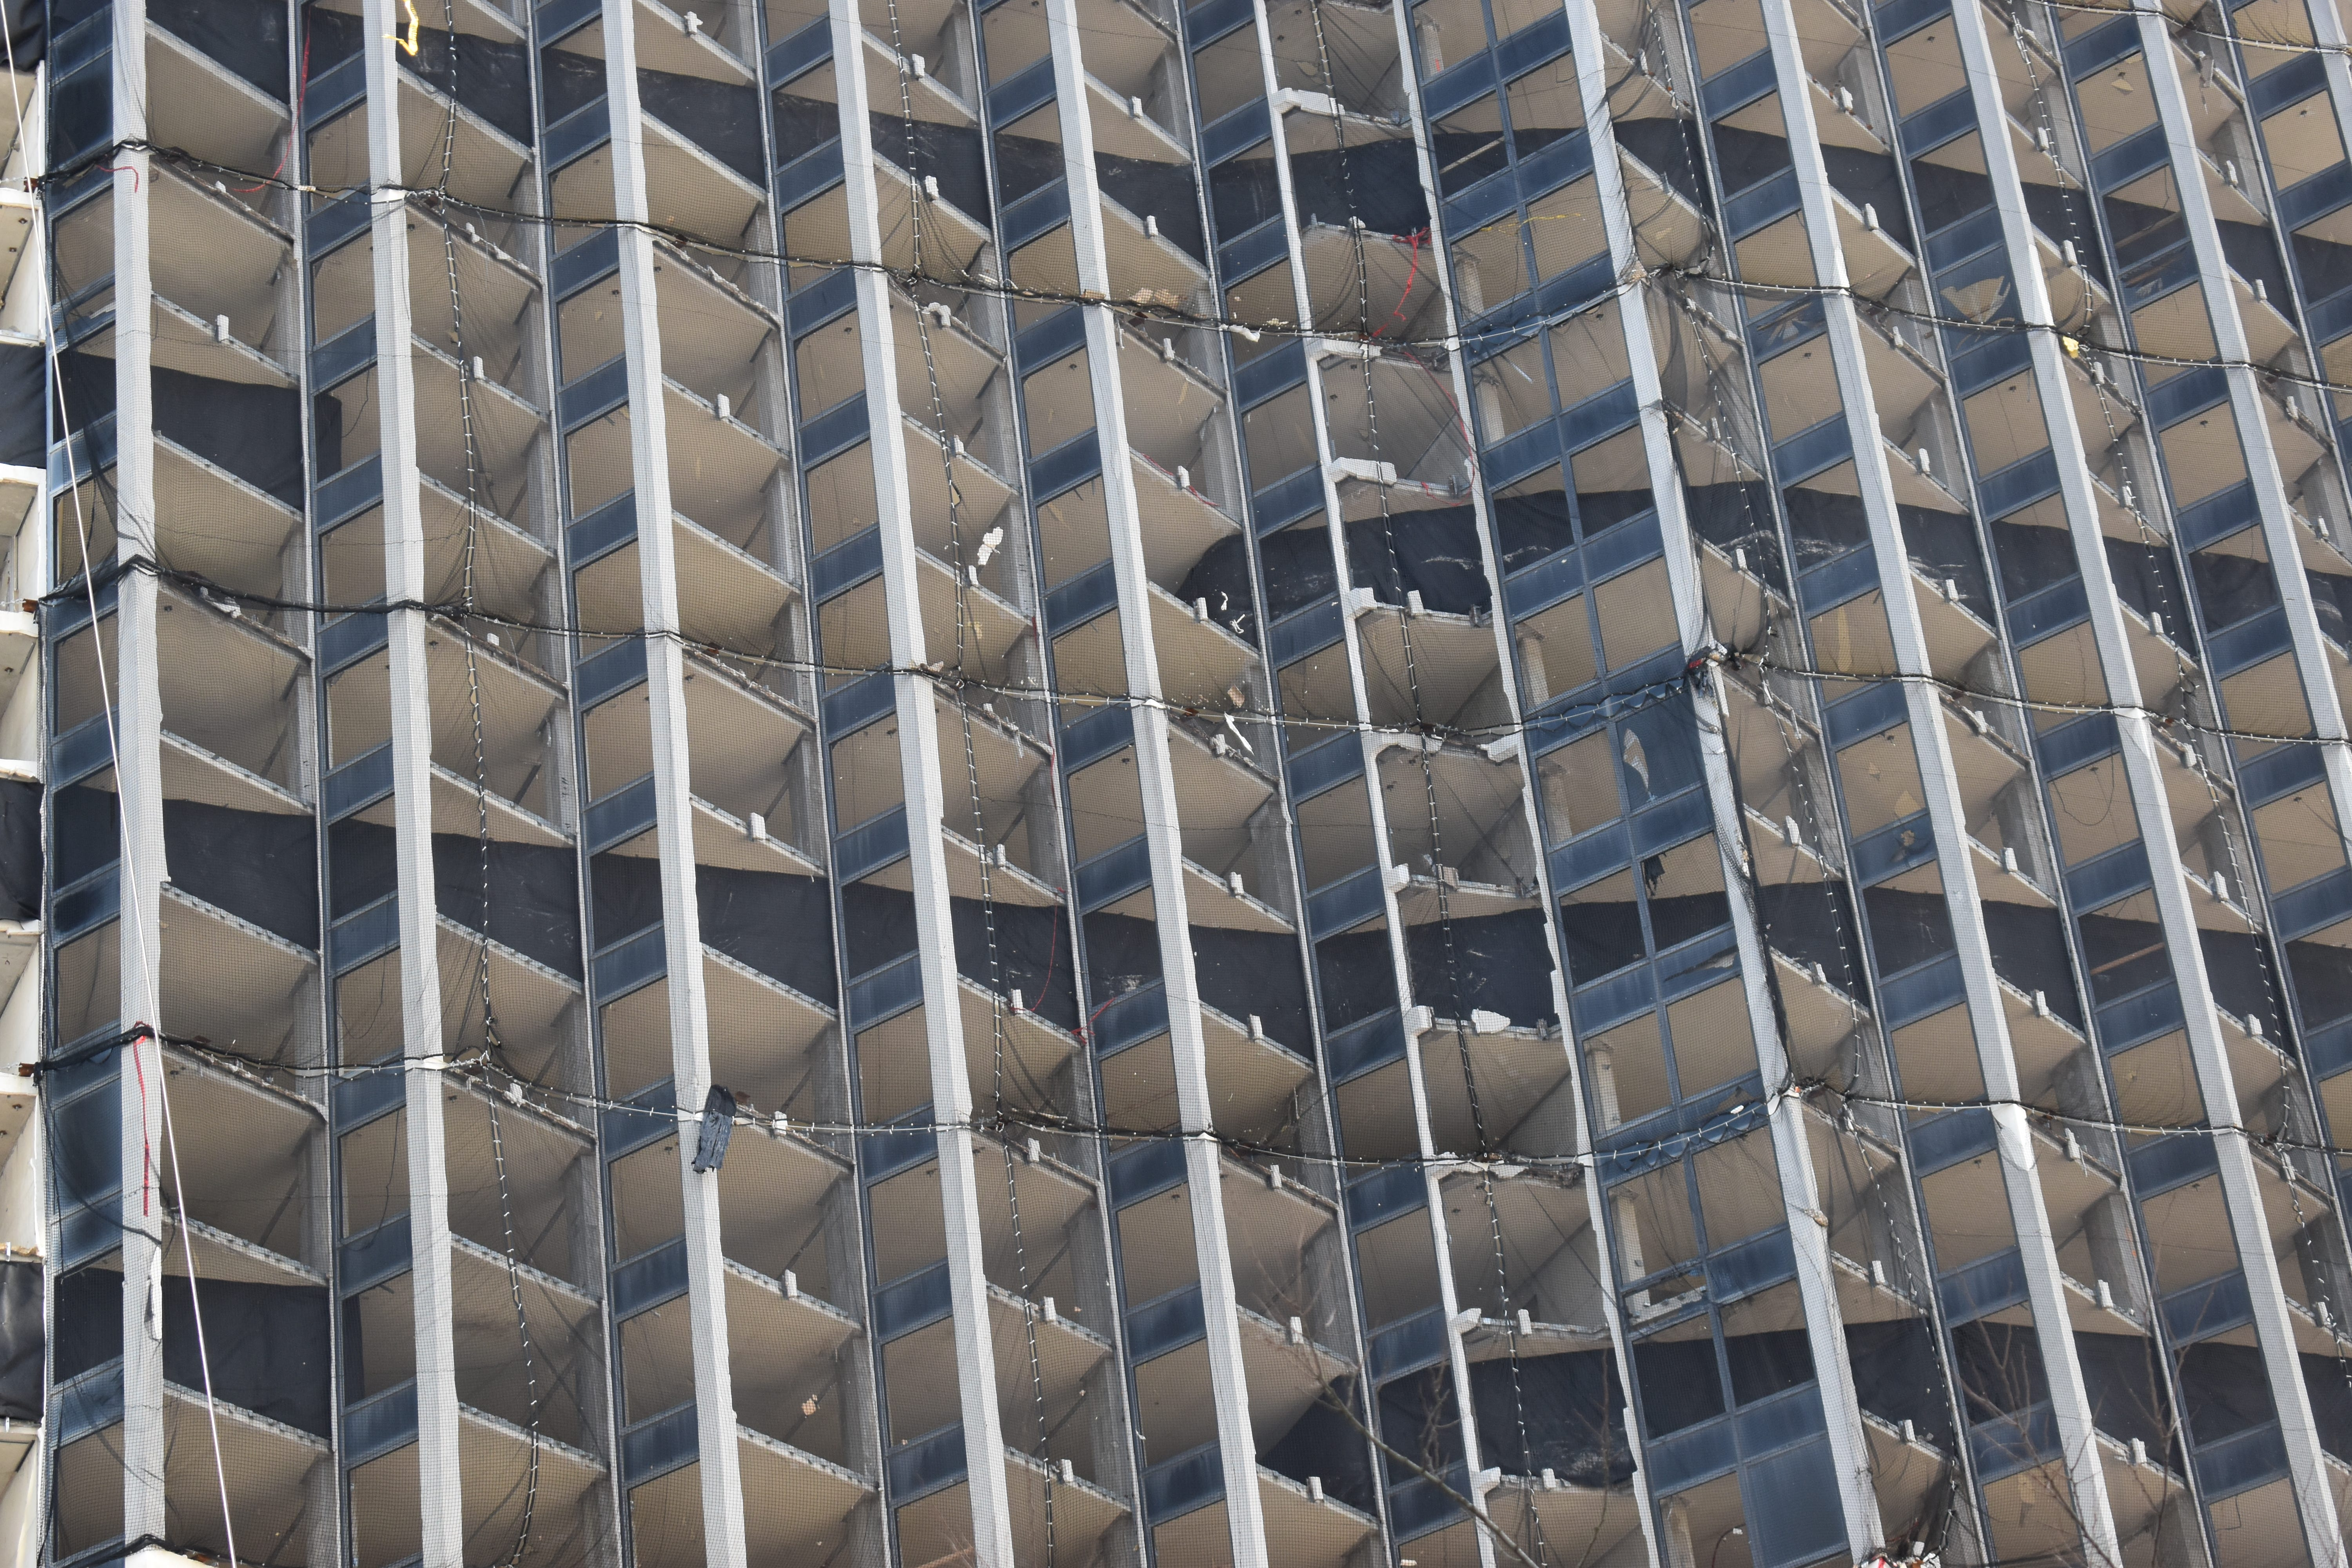 The Trump Plaza's hotel tower awaits implosion.